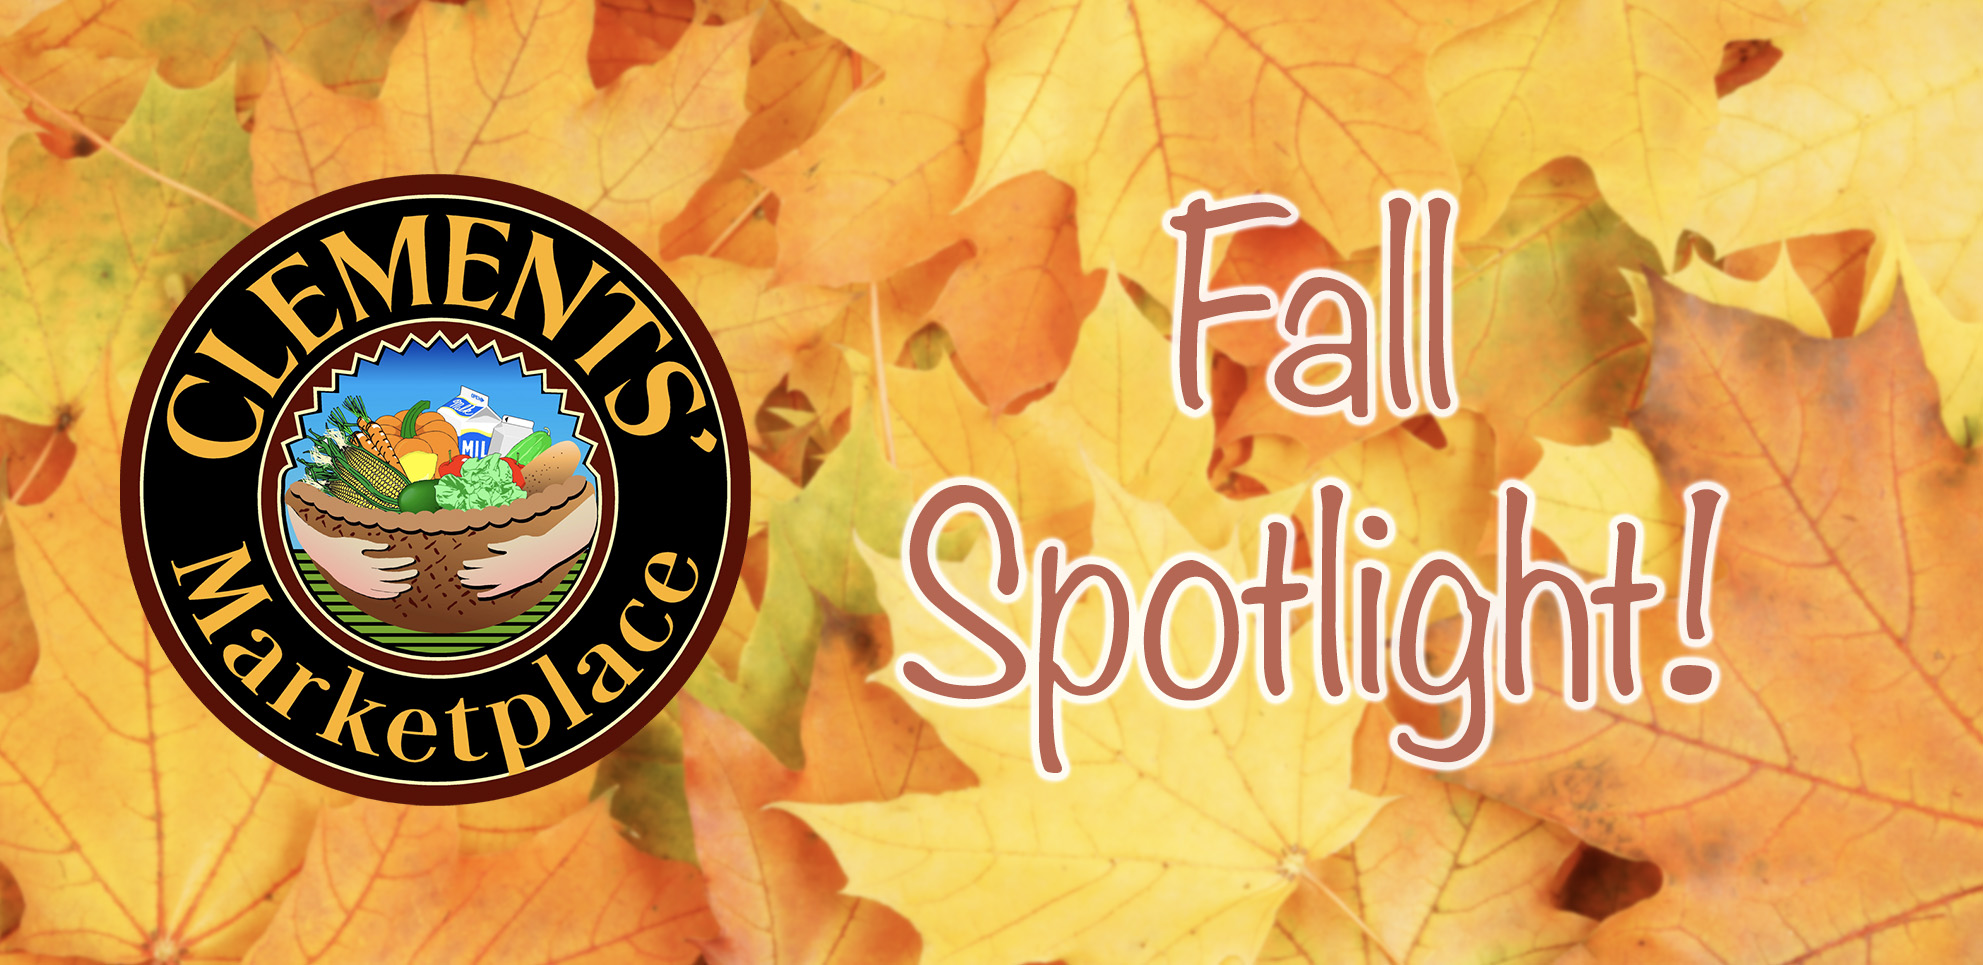 Fall Spotlight!